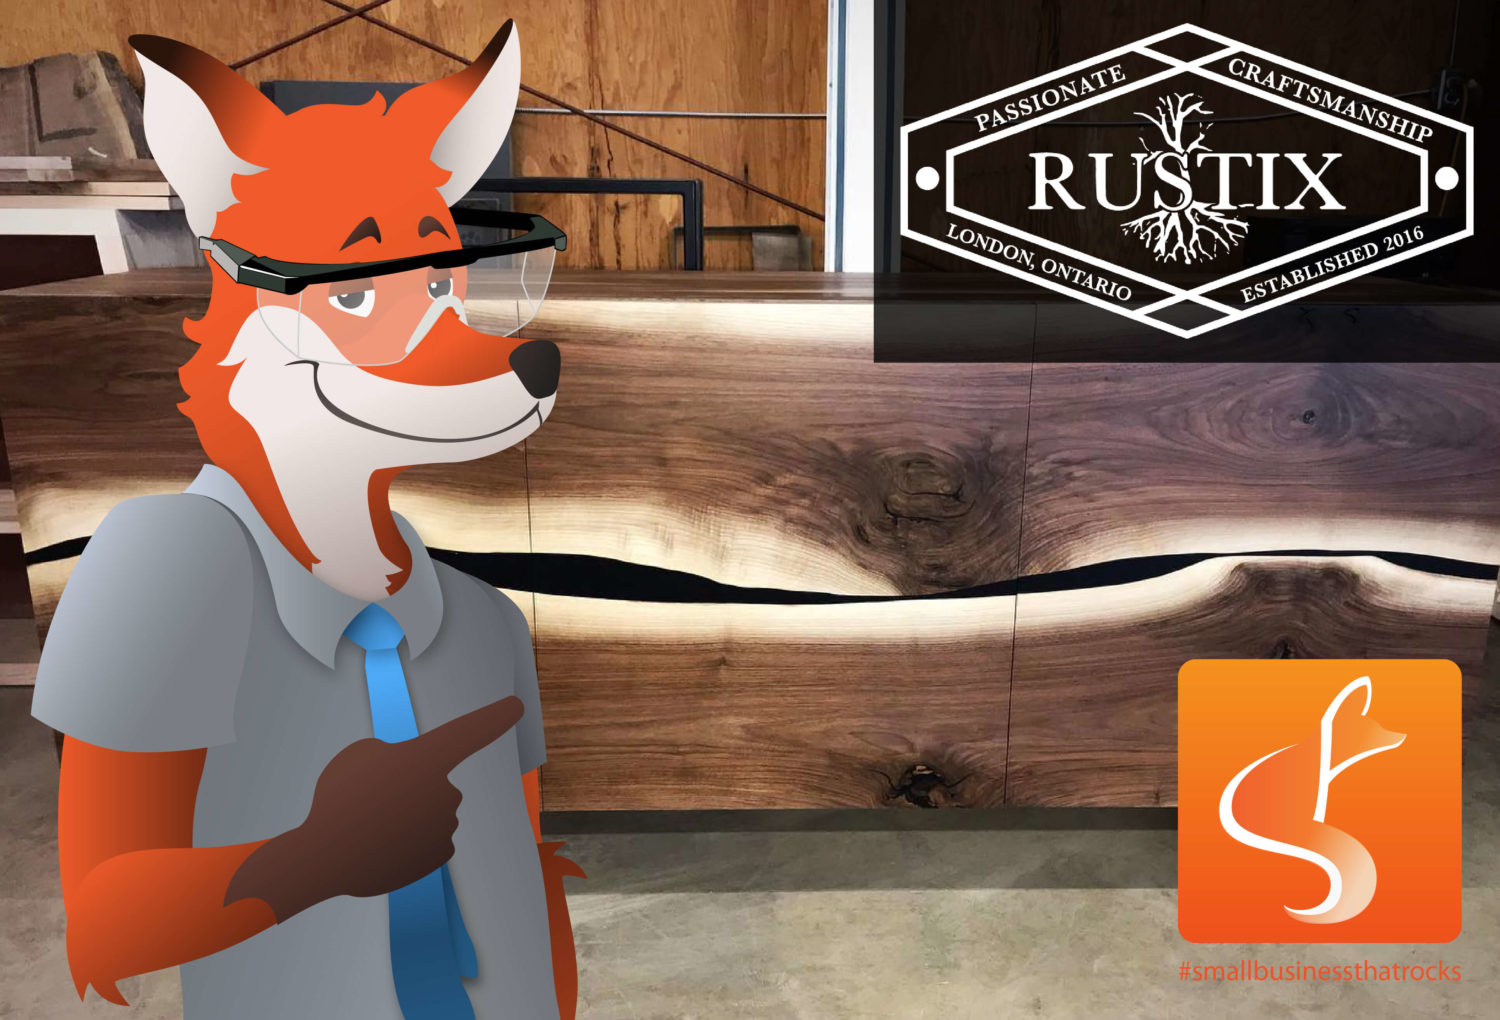 slyfox fox wearing safety goggle pointing at rustix logo - SlyFox Web Design and Marketing